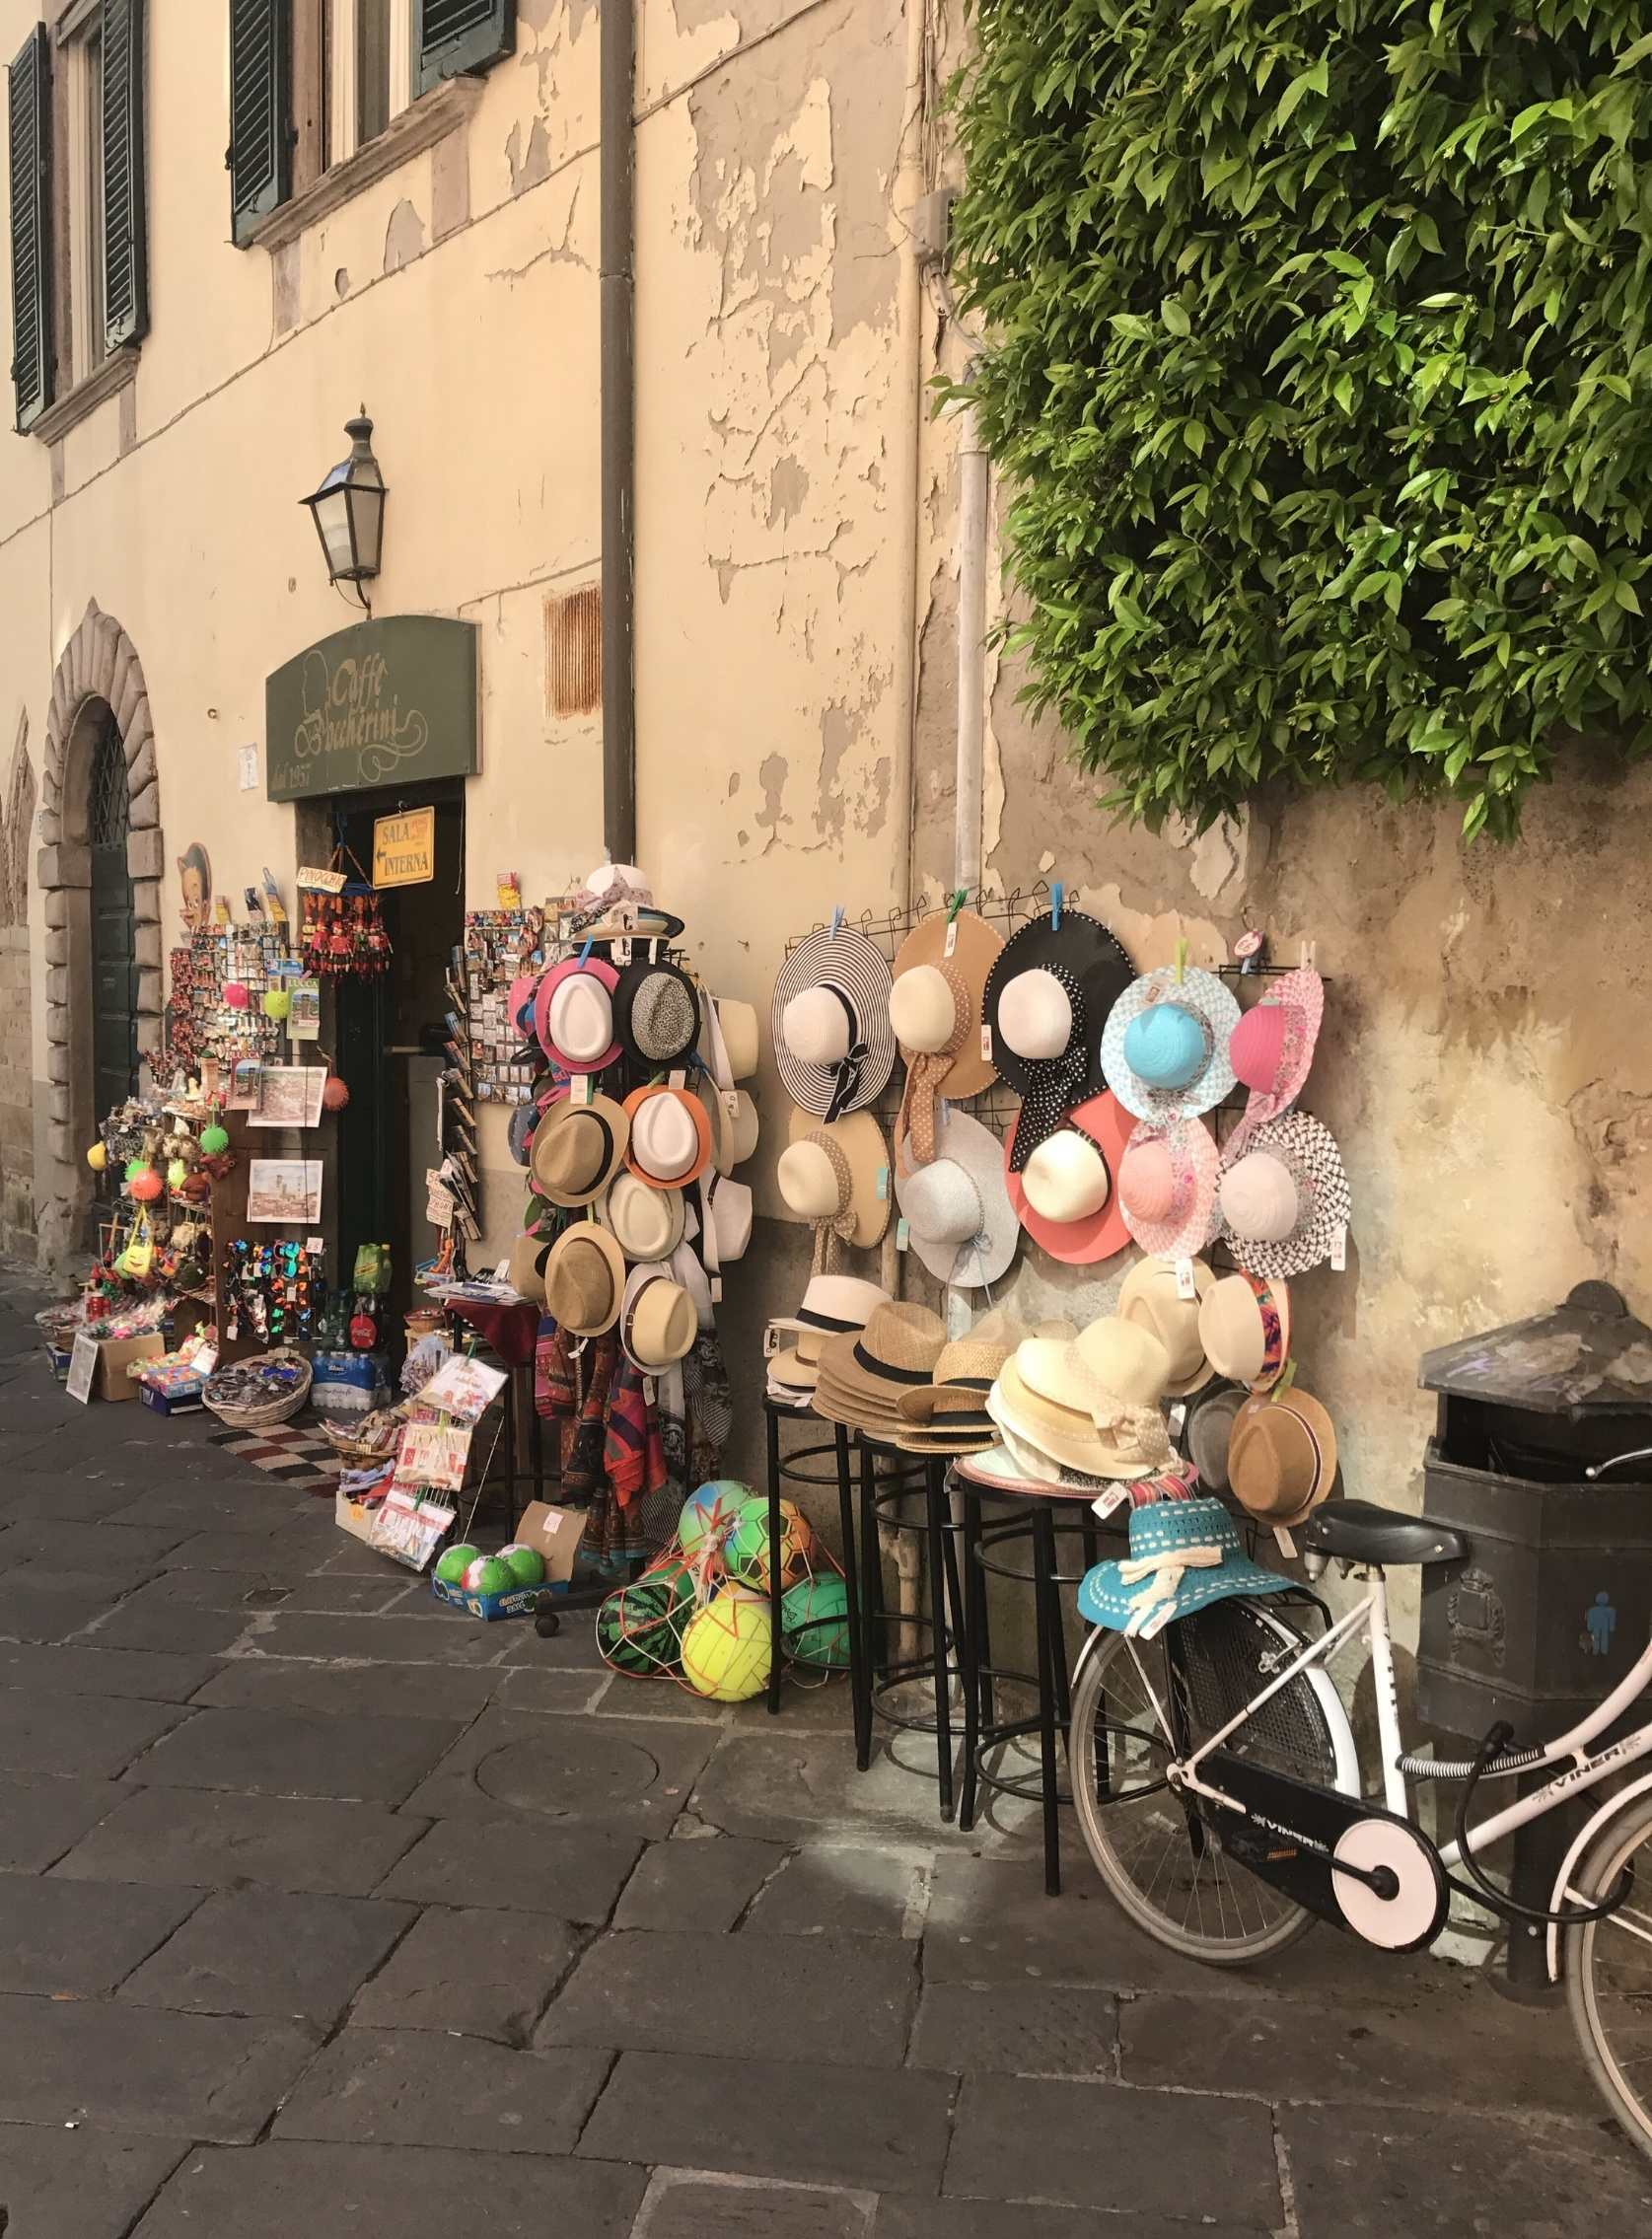 A shop display in Lucca.